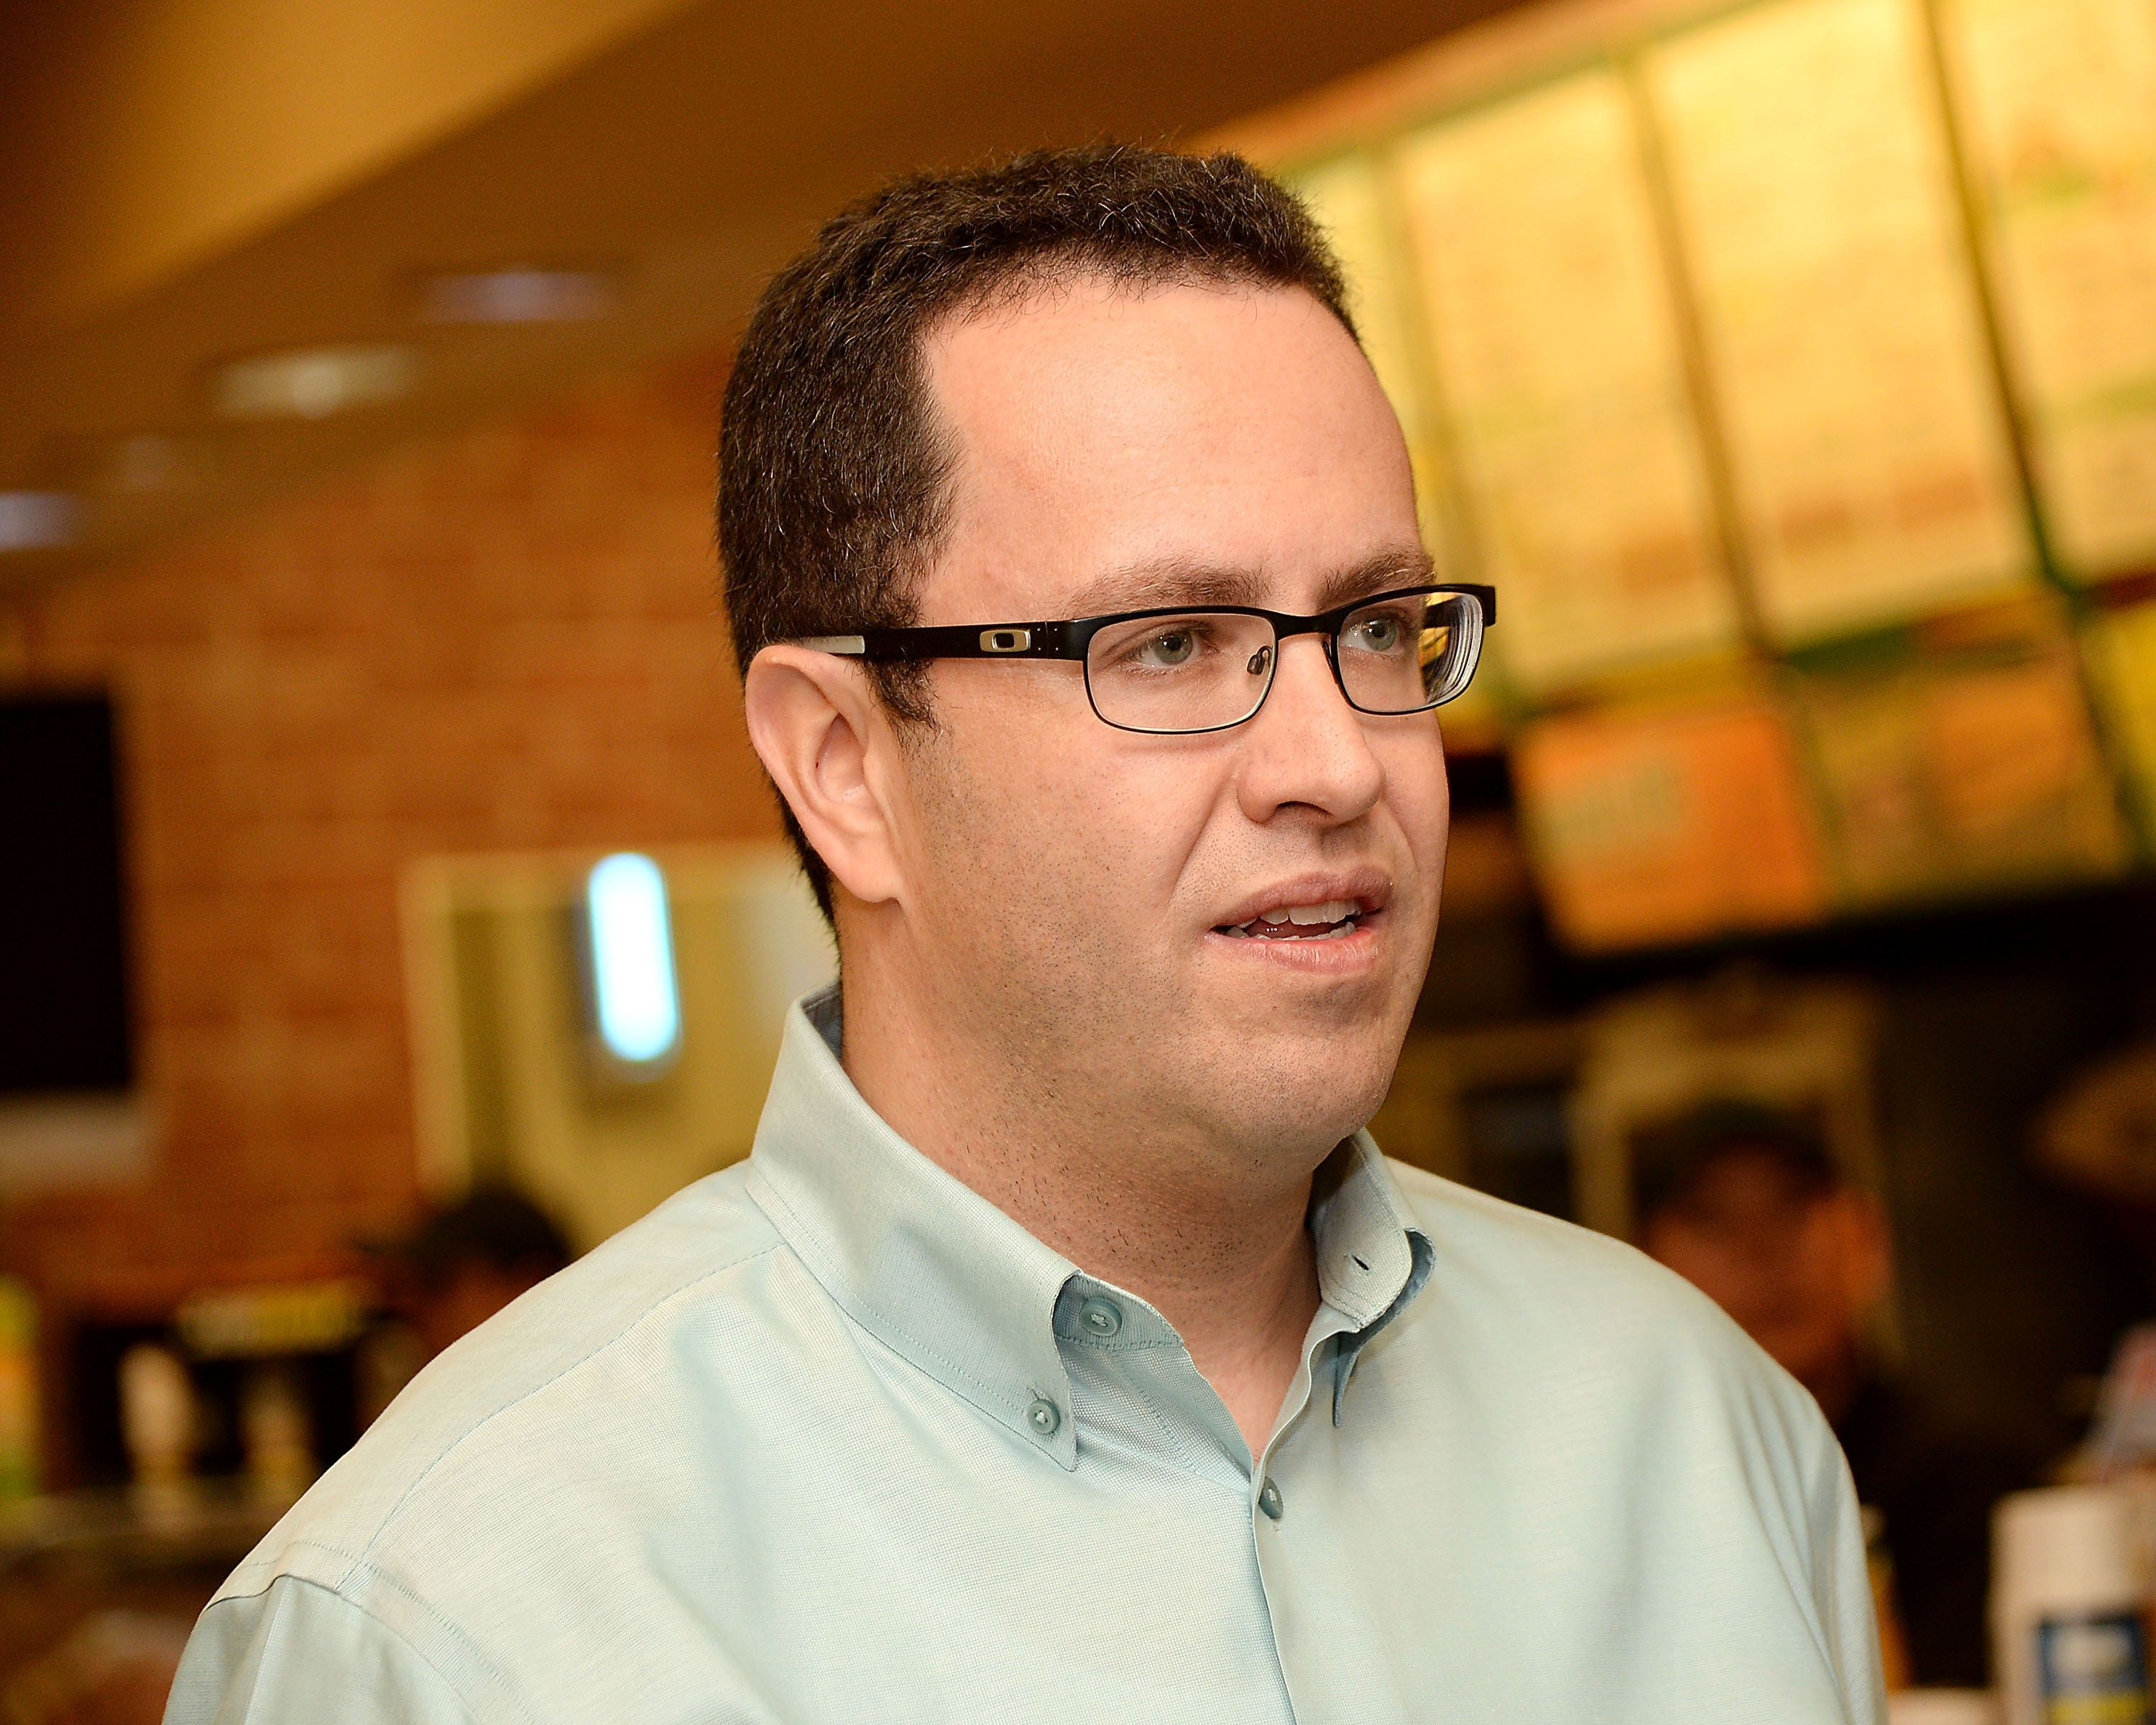 NEW YORK, NY - AUGUST 28:  Jared 'The SUBWAY Guy' Fogle speaks at the Star Wars Rebels Promotion Kick-Off at Subway Restaurant on August 28, 2014 in New York City.  (Photo by Ben Gabbe/Getty Images)